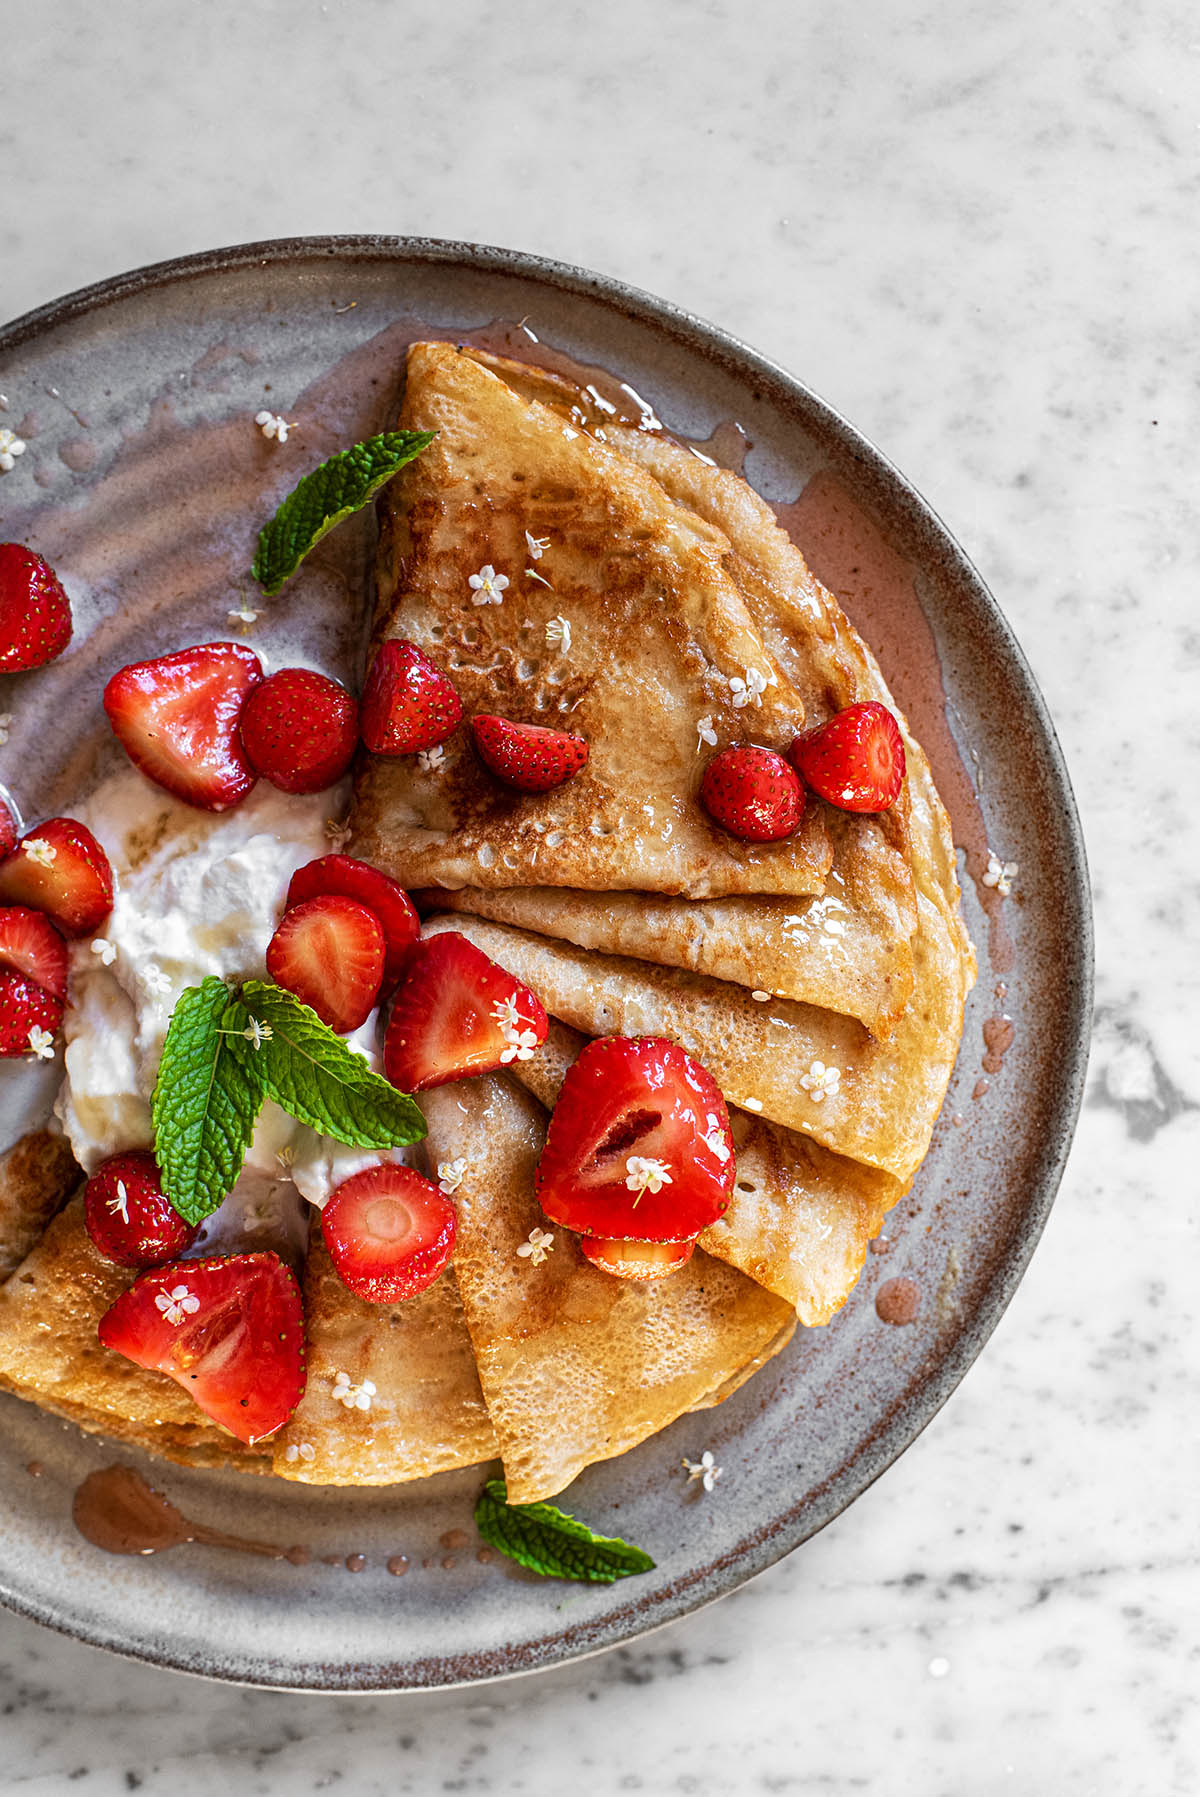 Sourdough Crepes Baked